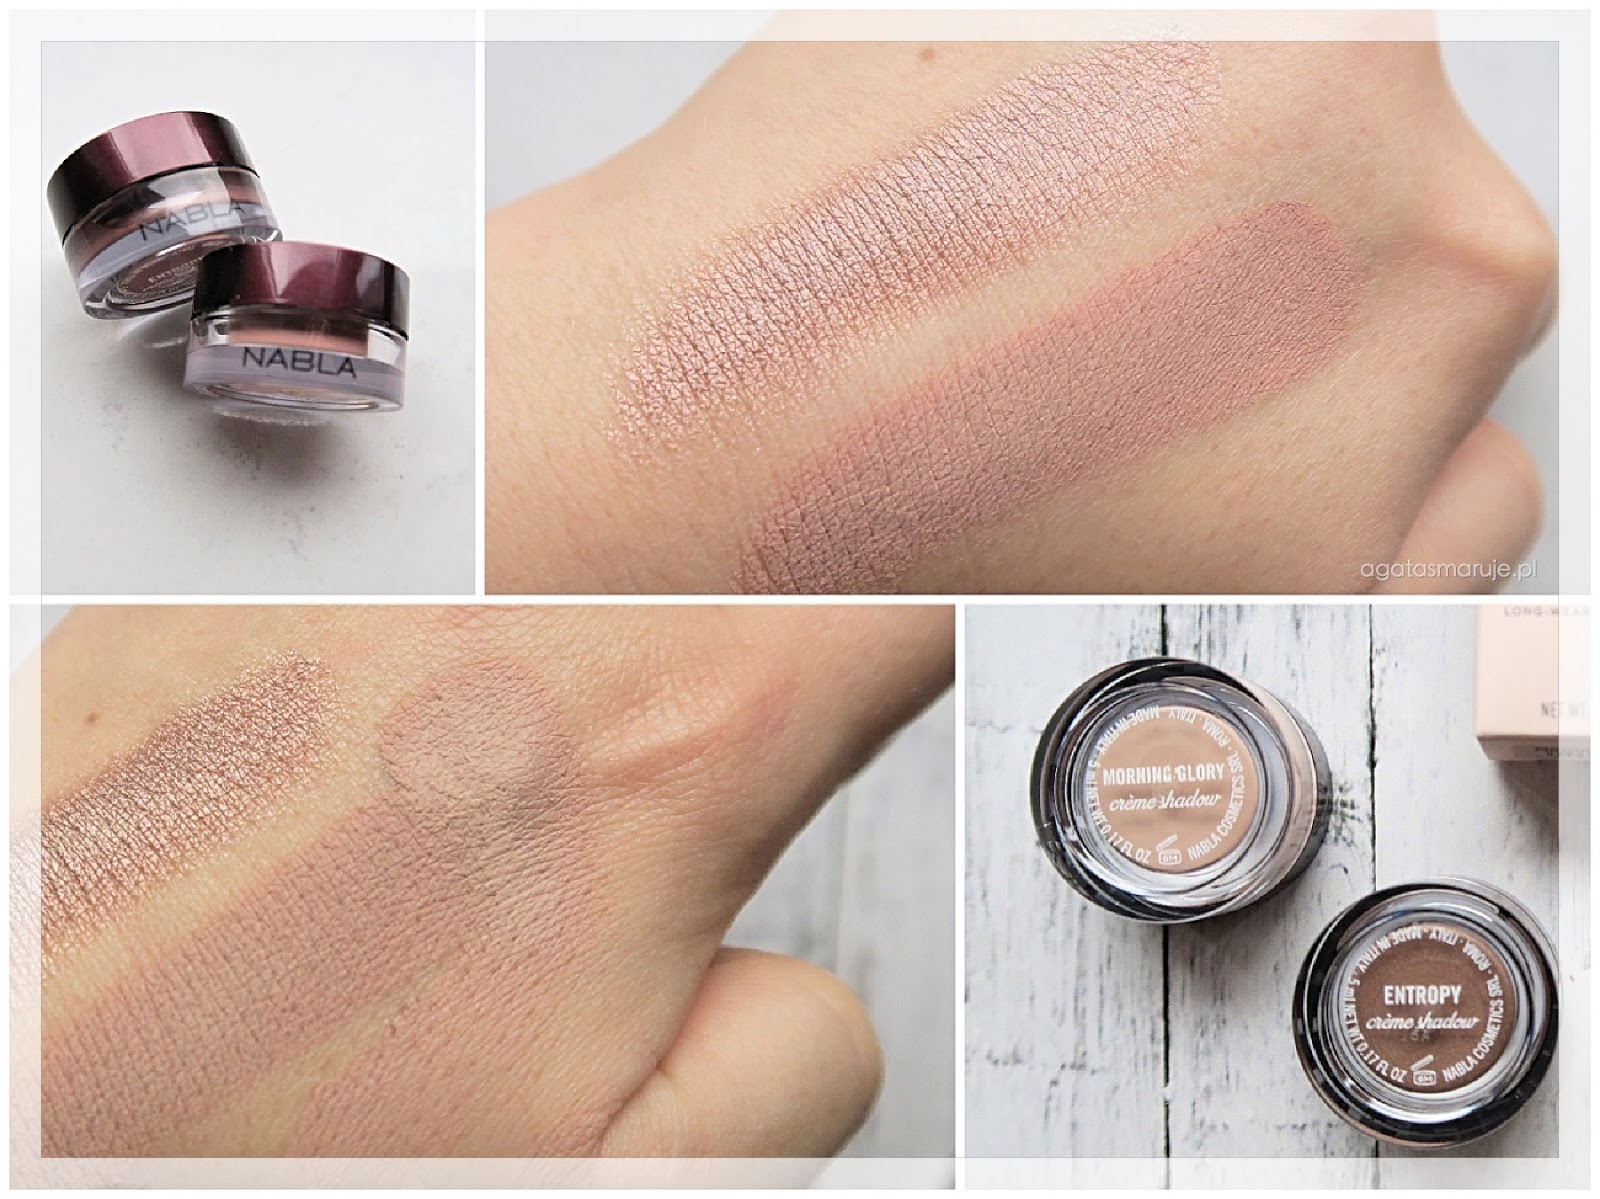 Nabla Creme Shadow Entropy, Morning Glory swatches